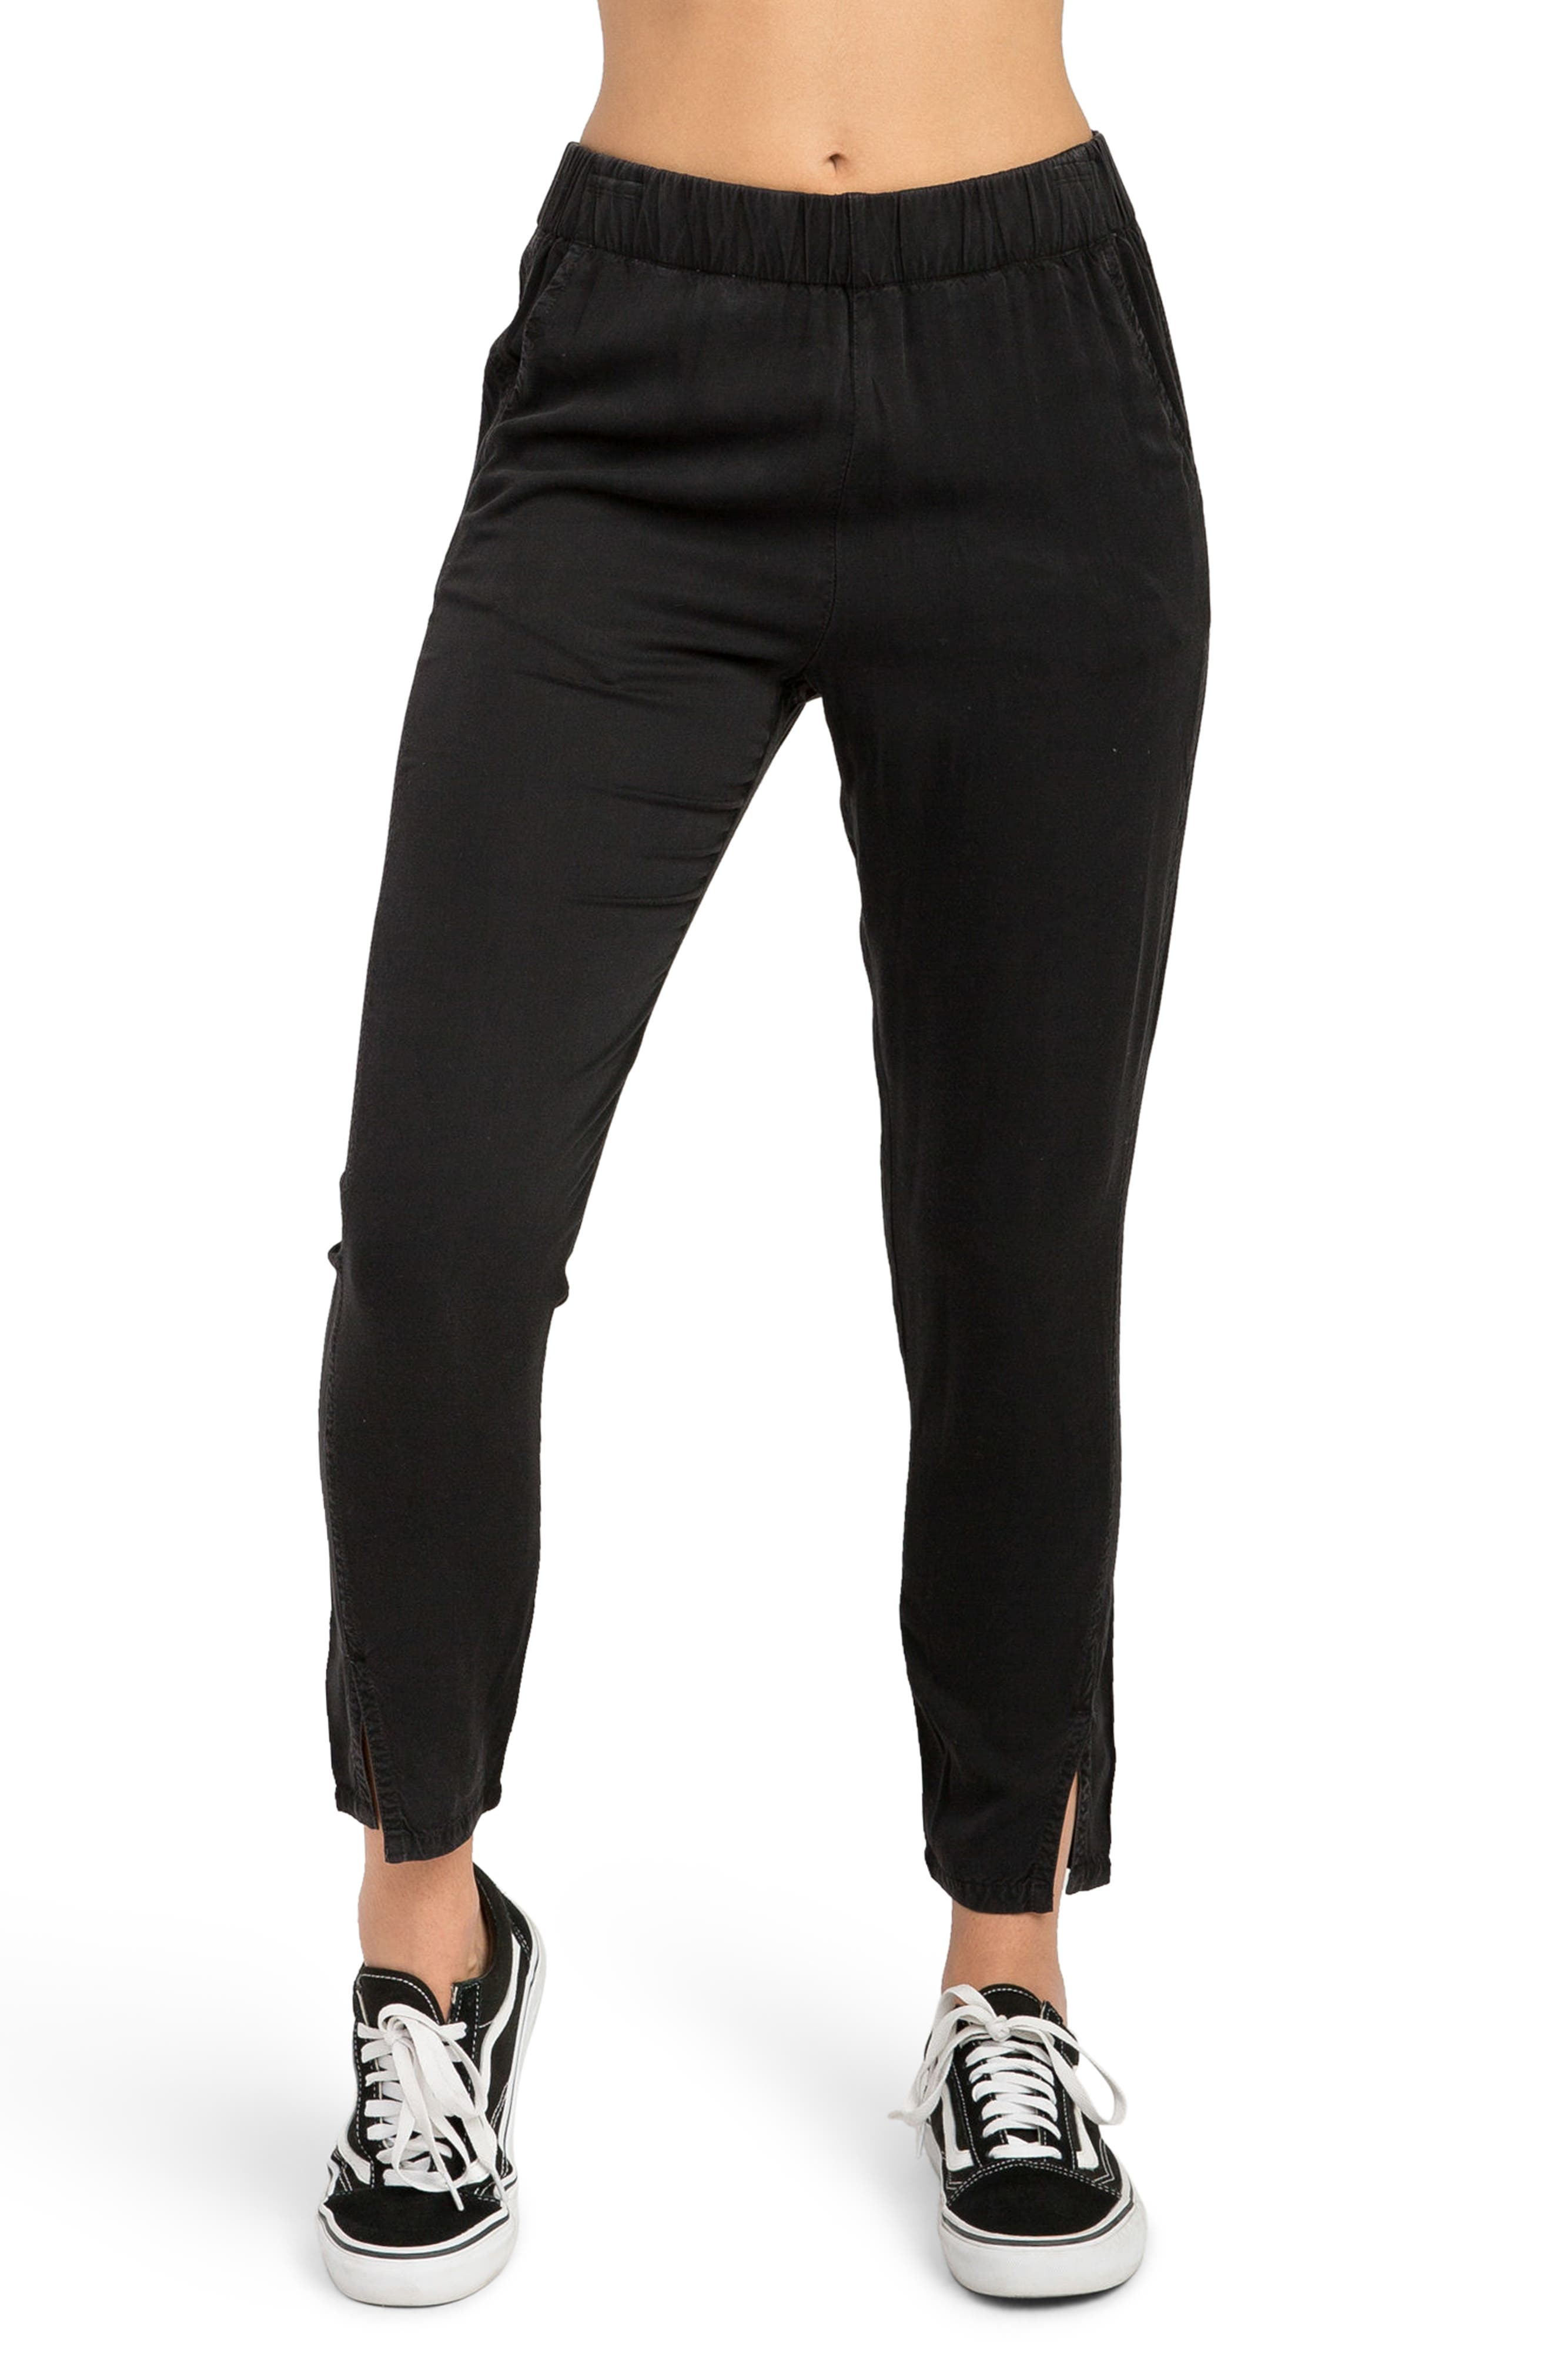 Chill Vibes Ankle Pants,                             Main thumbnail 1, color,                             001